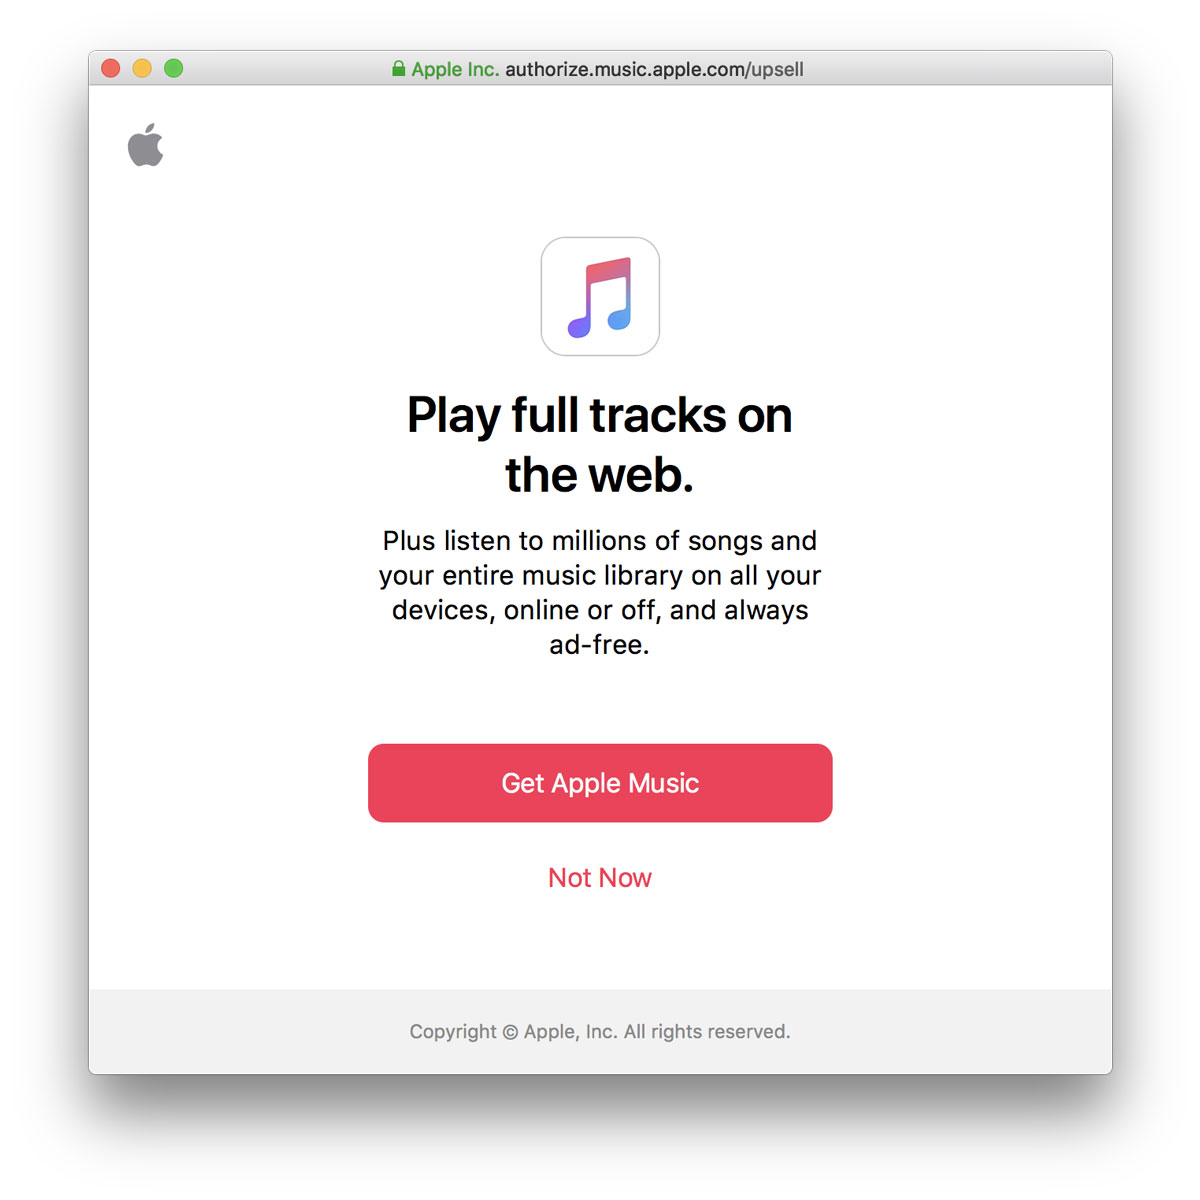 Apple Enabling Apple Music Web Player to Stream Full Tracks